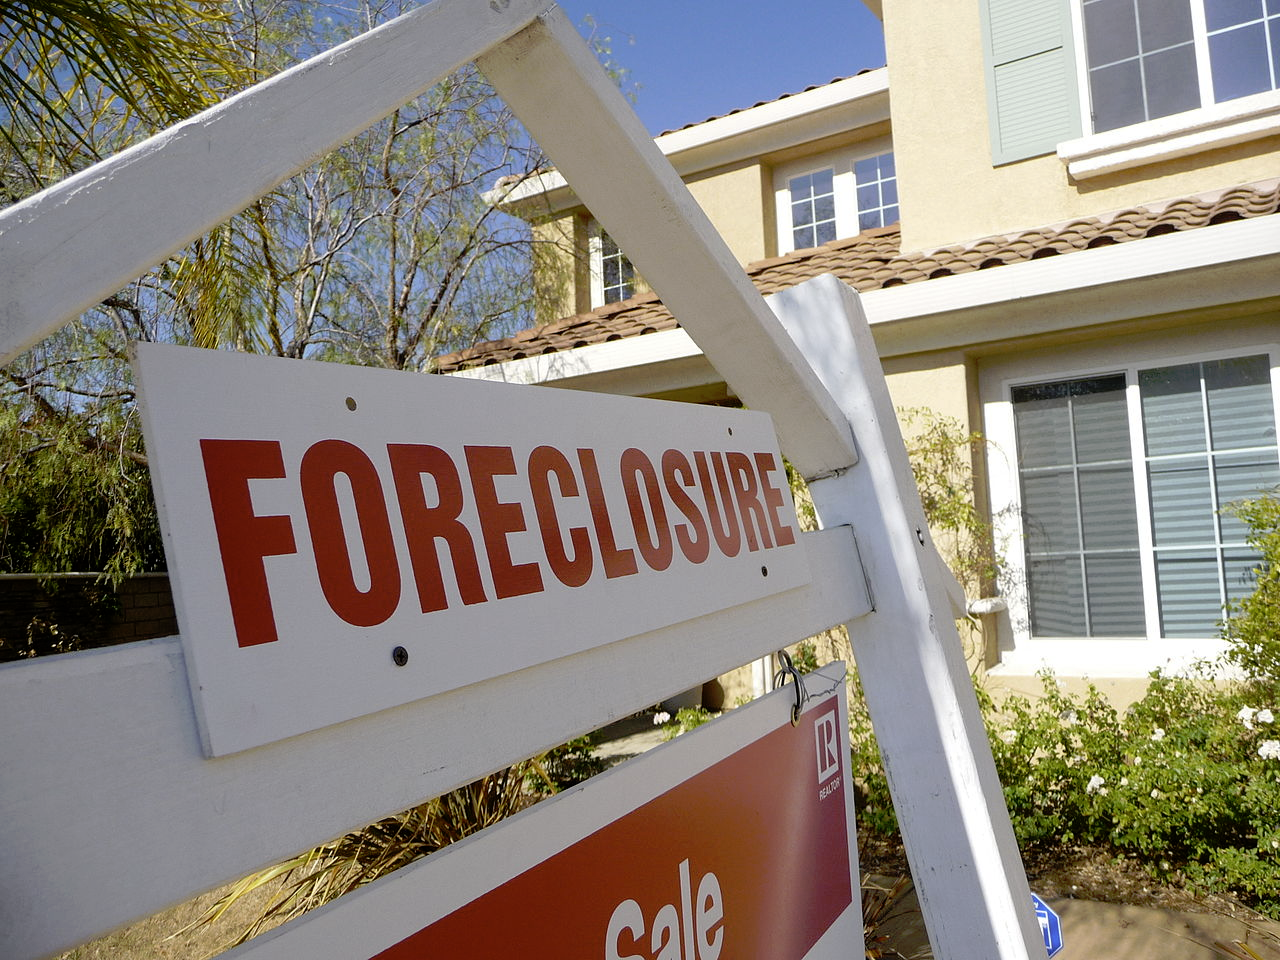 home foreclosure image - kids learning abut mortgages